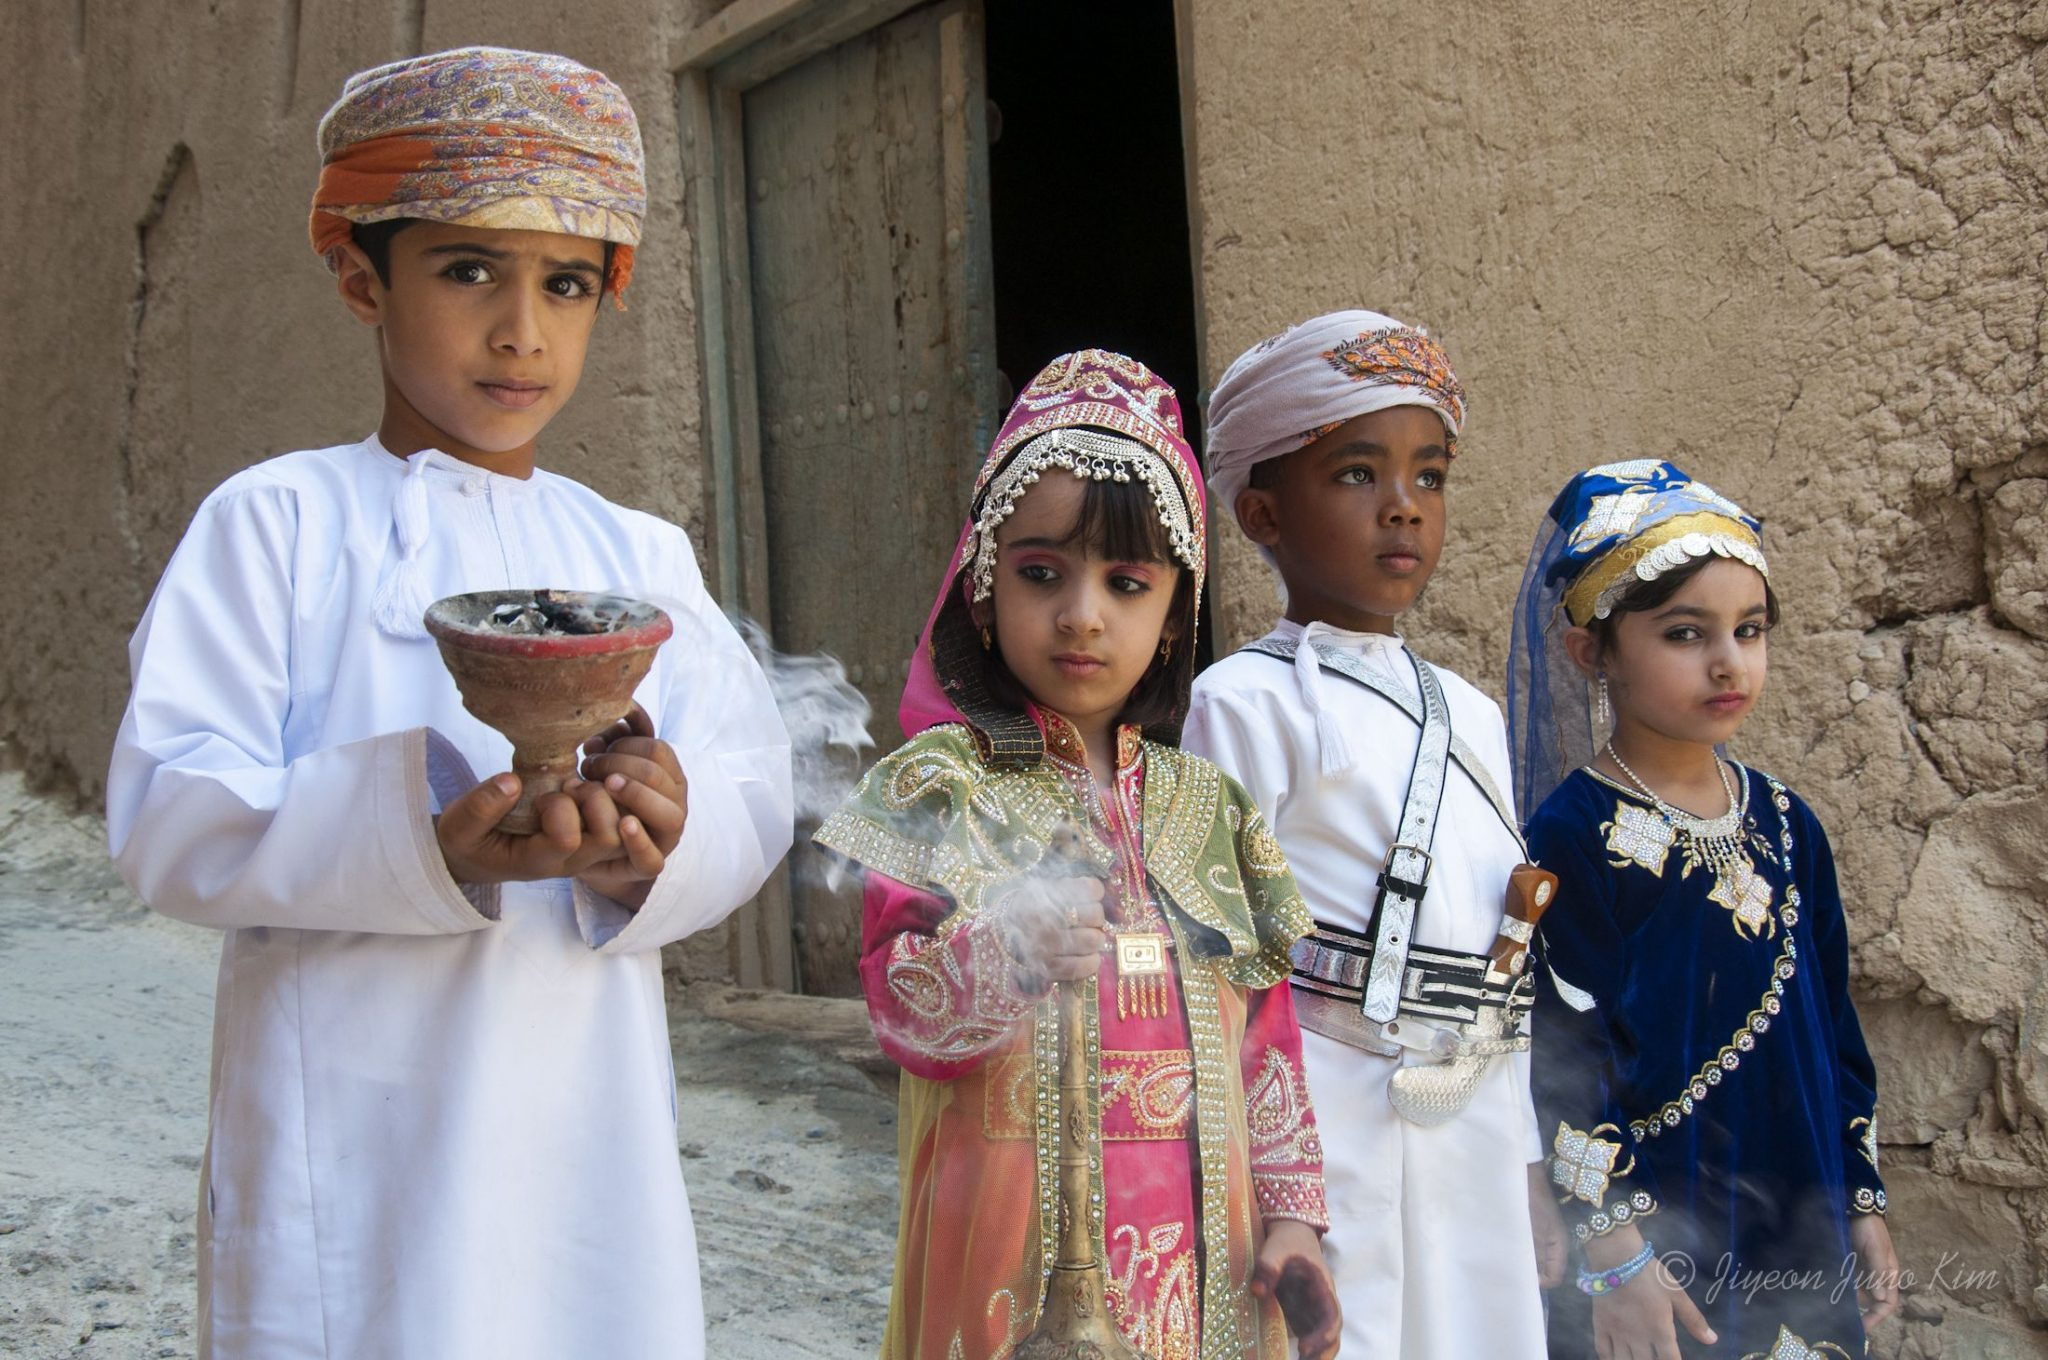 Children in Bait al Safah